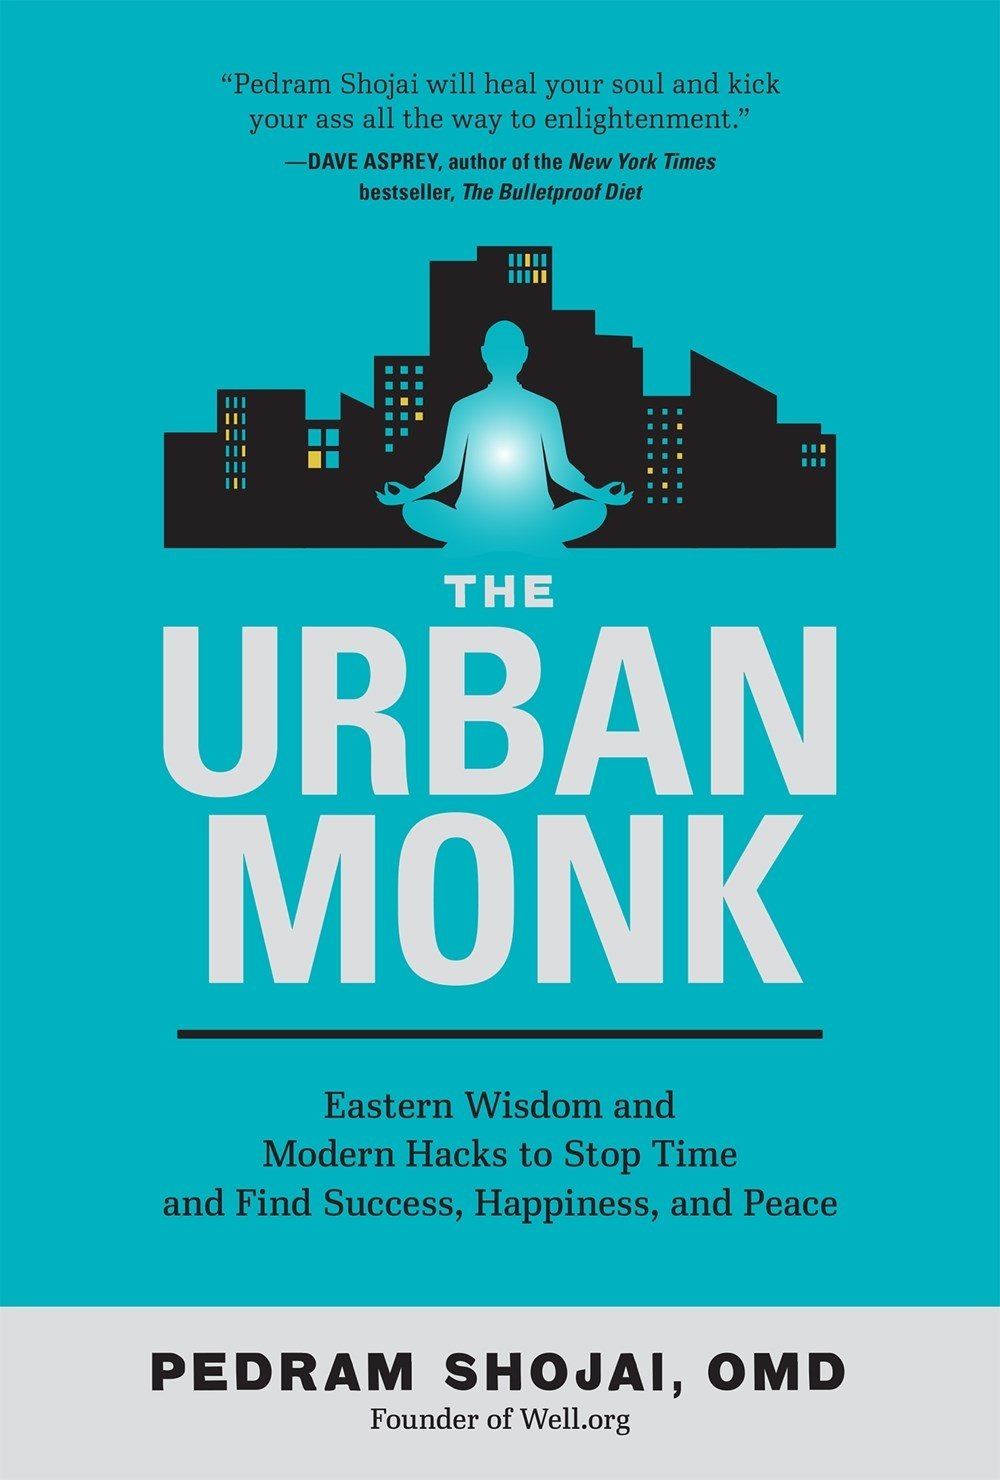 Buy The Urban Monk Book Online at Low Prices in India | The Urban Monk  Reviews & Ratings - Amazon.in